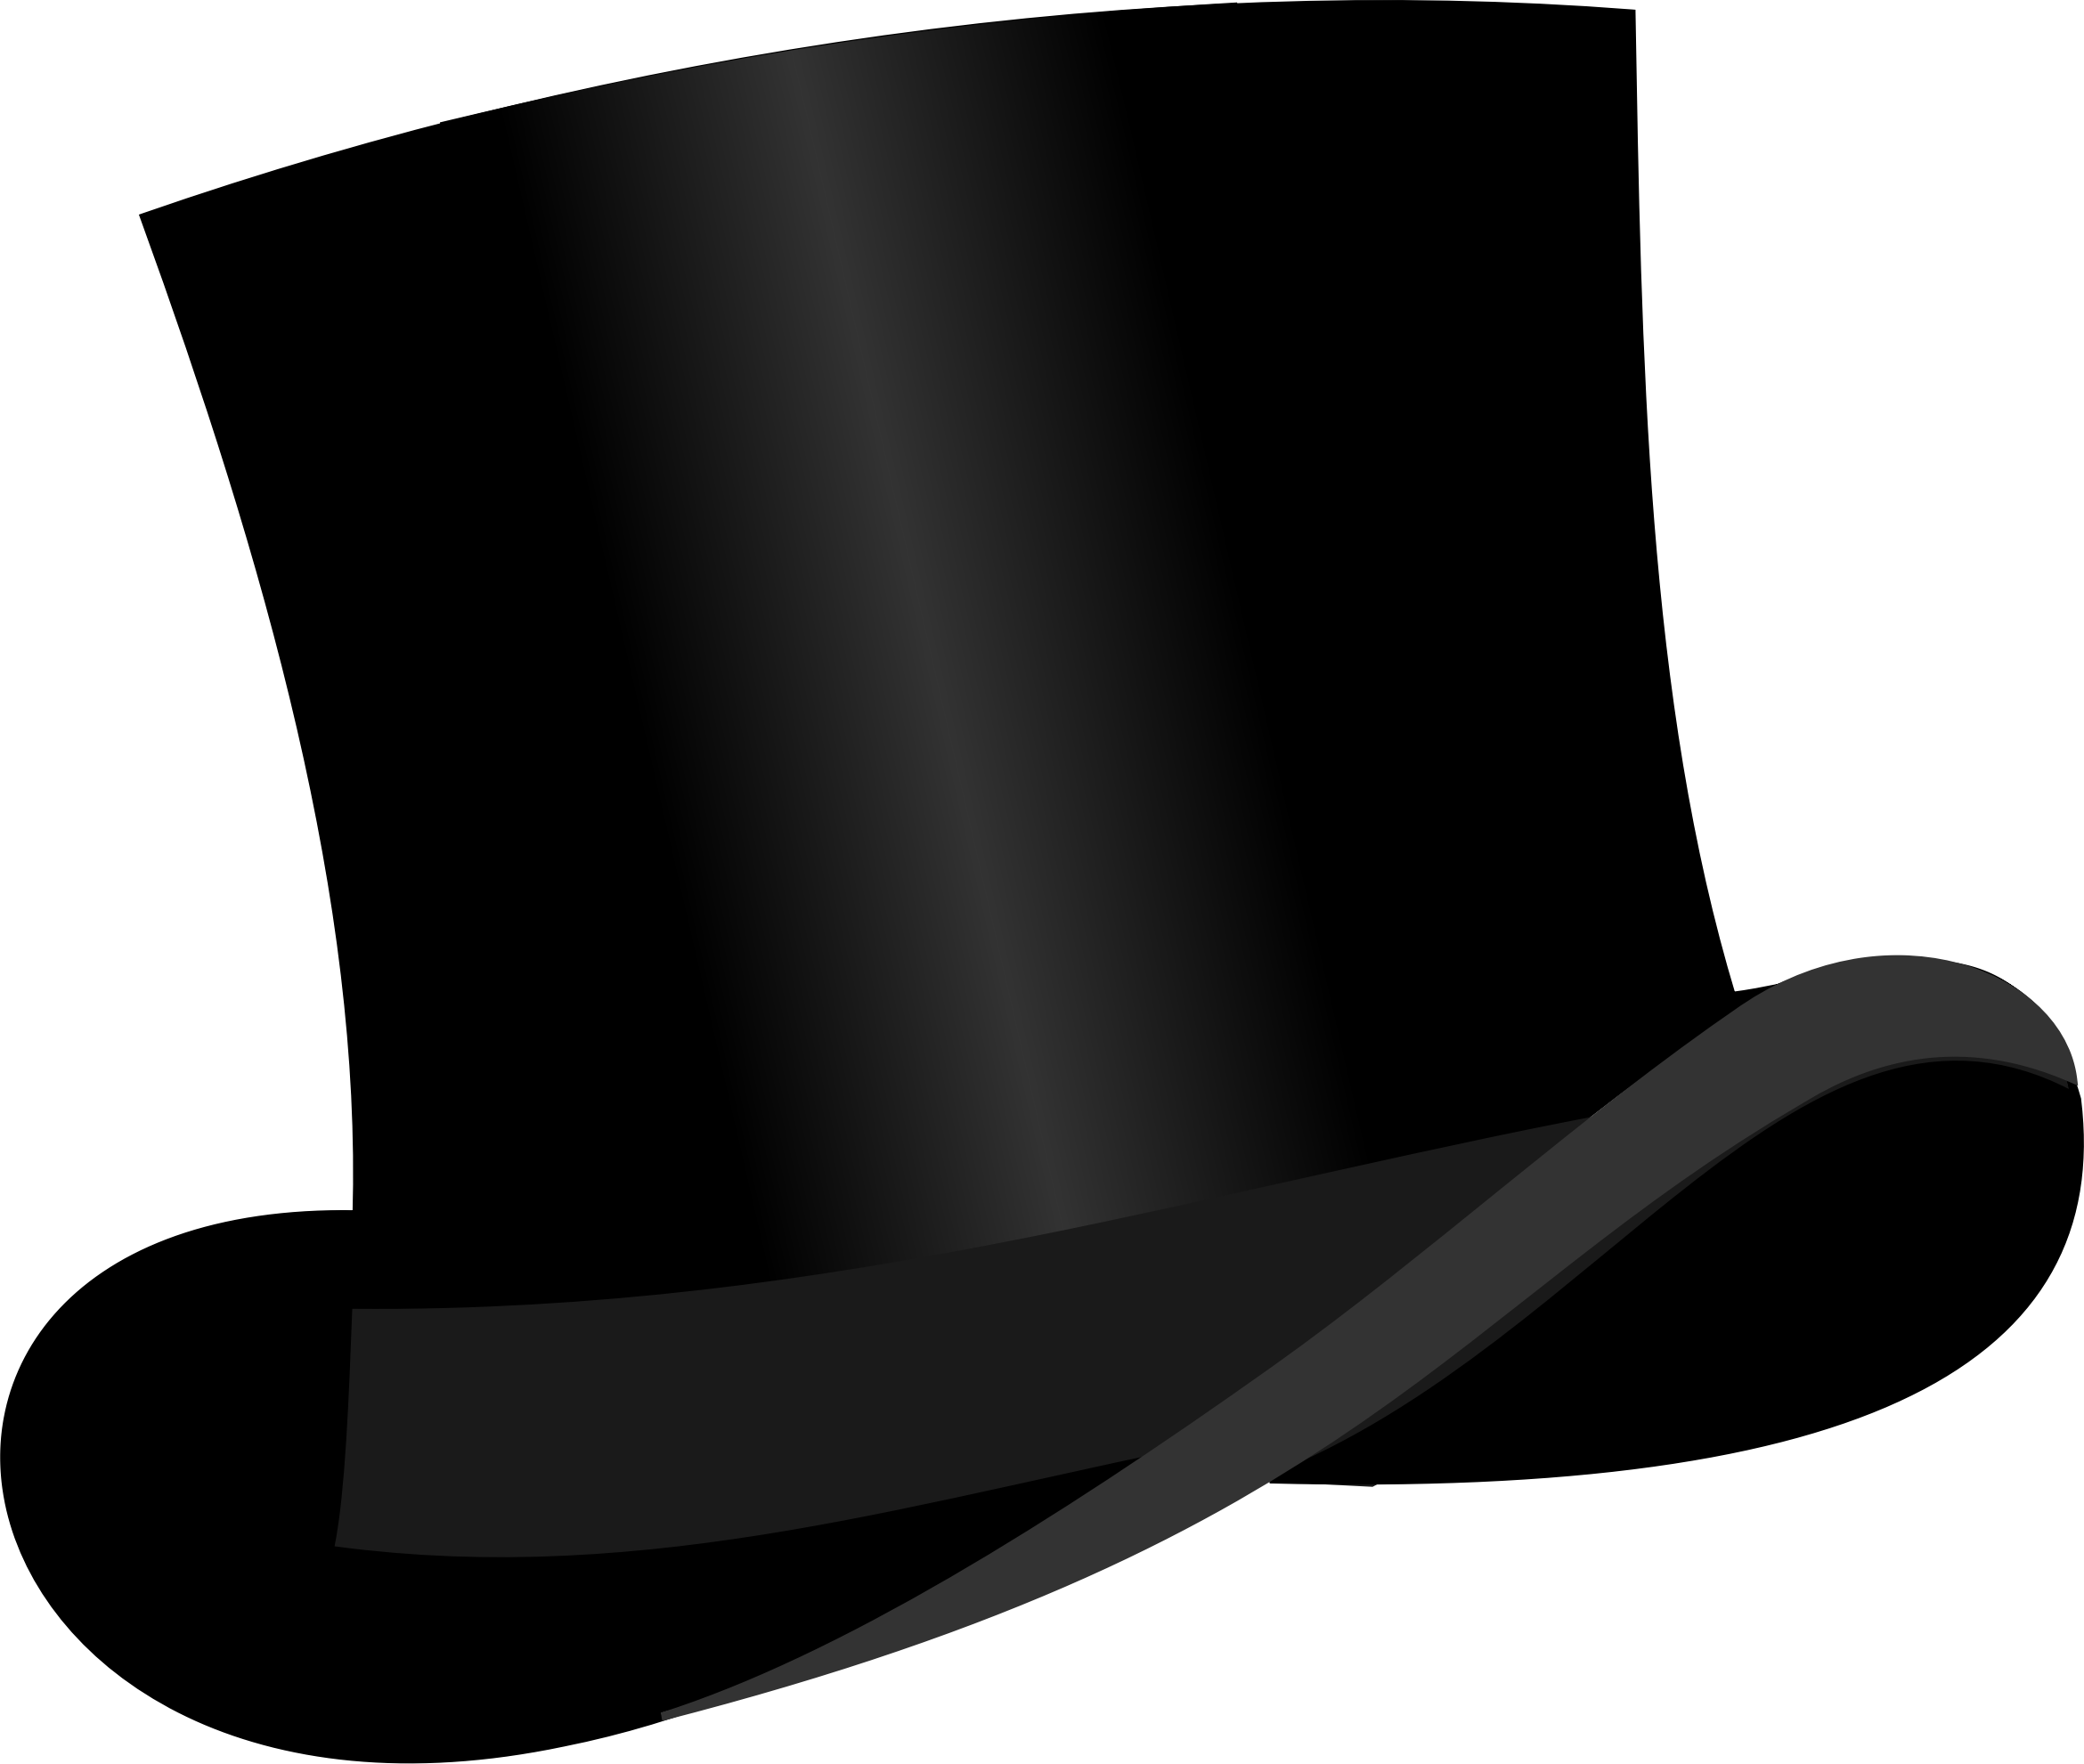 Top Hat By Bonzo Top Hat Based On Http Openclipart Org Detail 181579 Top Hat By Liftarn 181579 On Openclipart Hat Base Hat Vector Top Hat